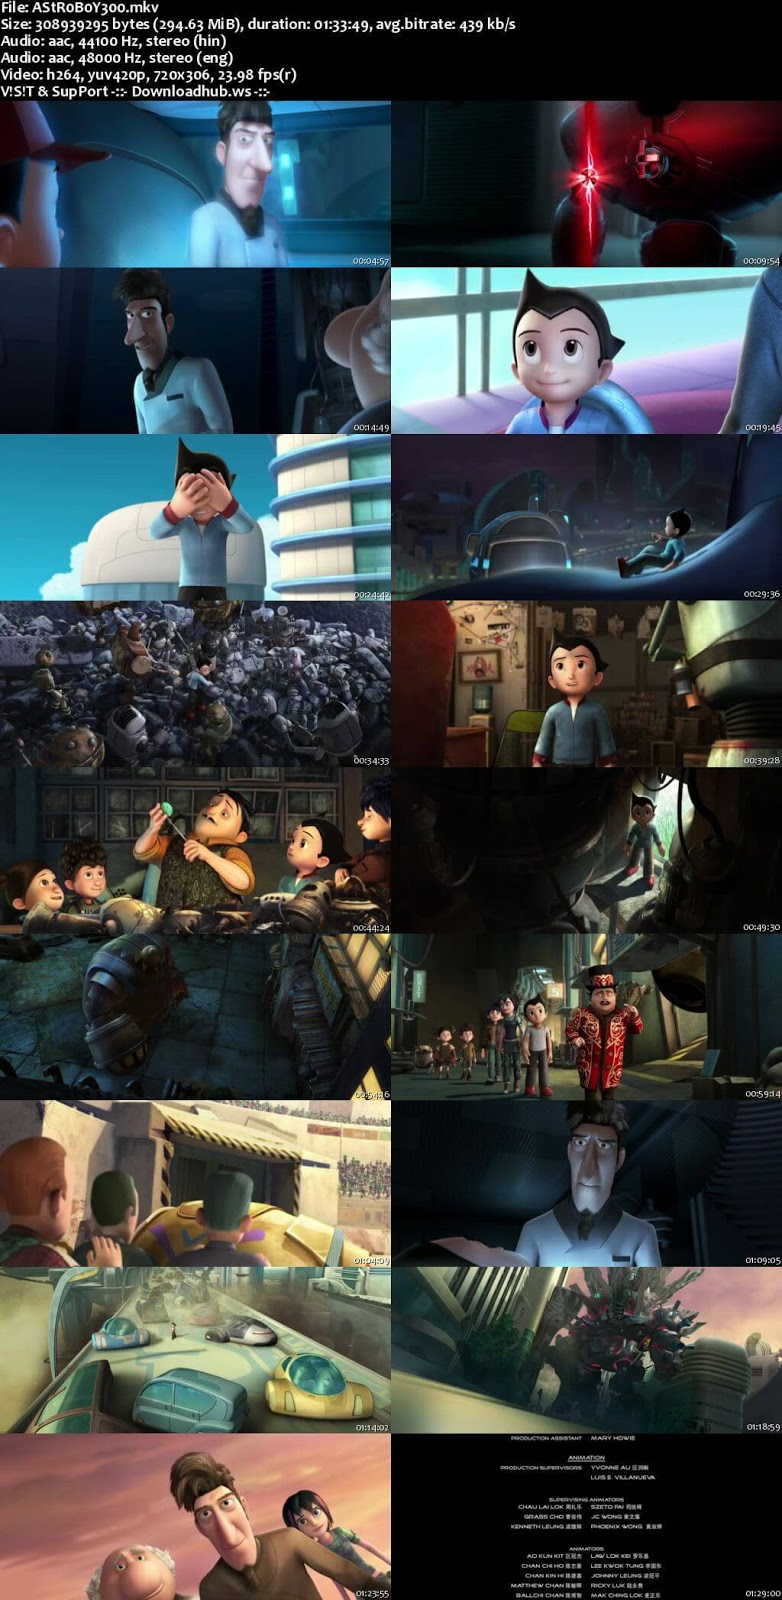 Astro Boy 2009 Hindi Dual Audio 480p BluRay Free Download